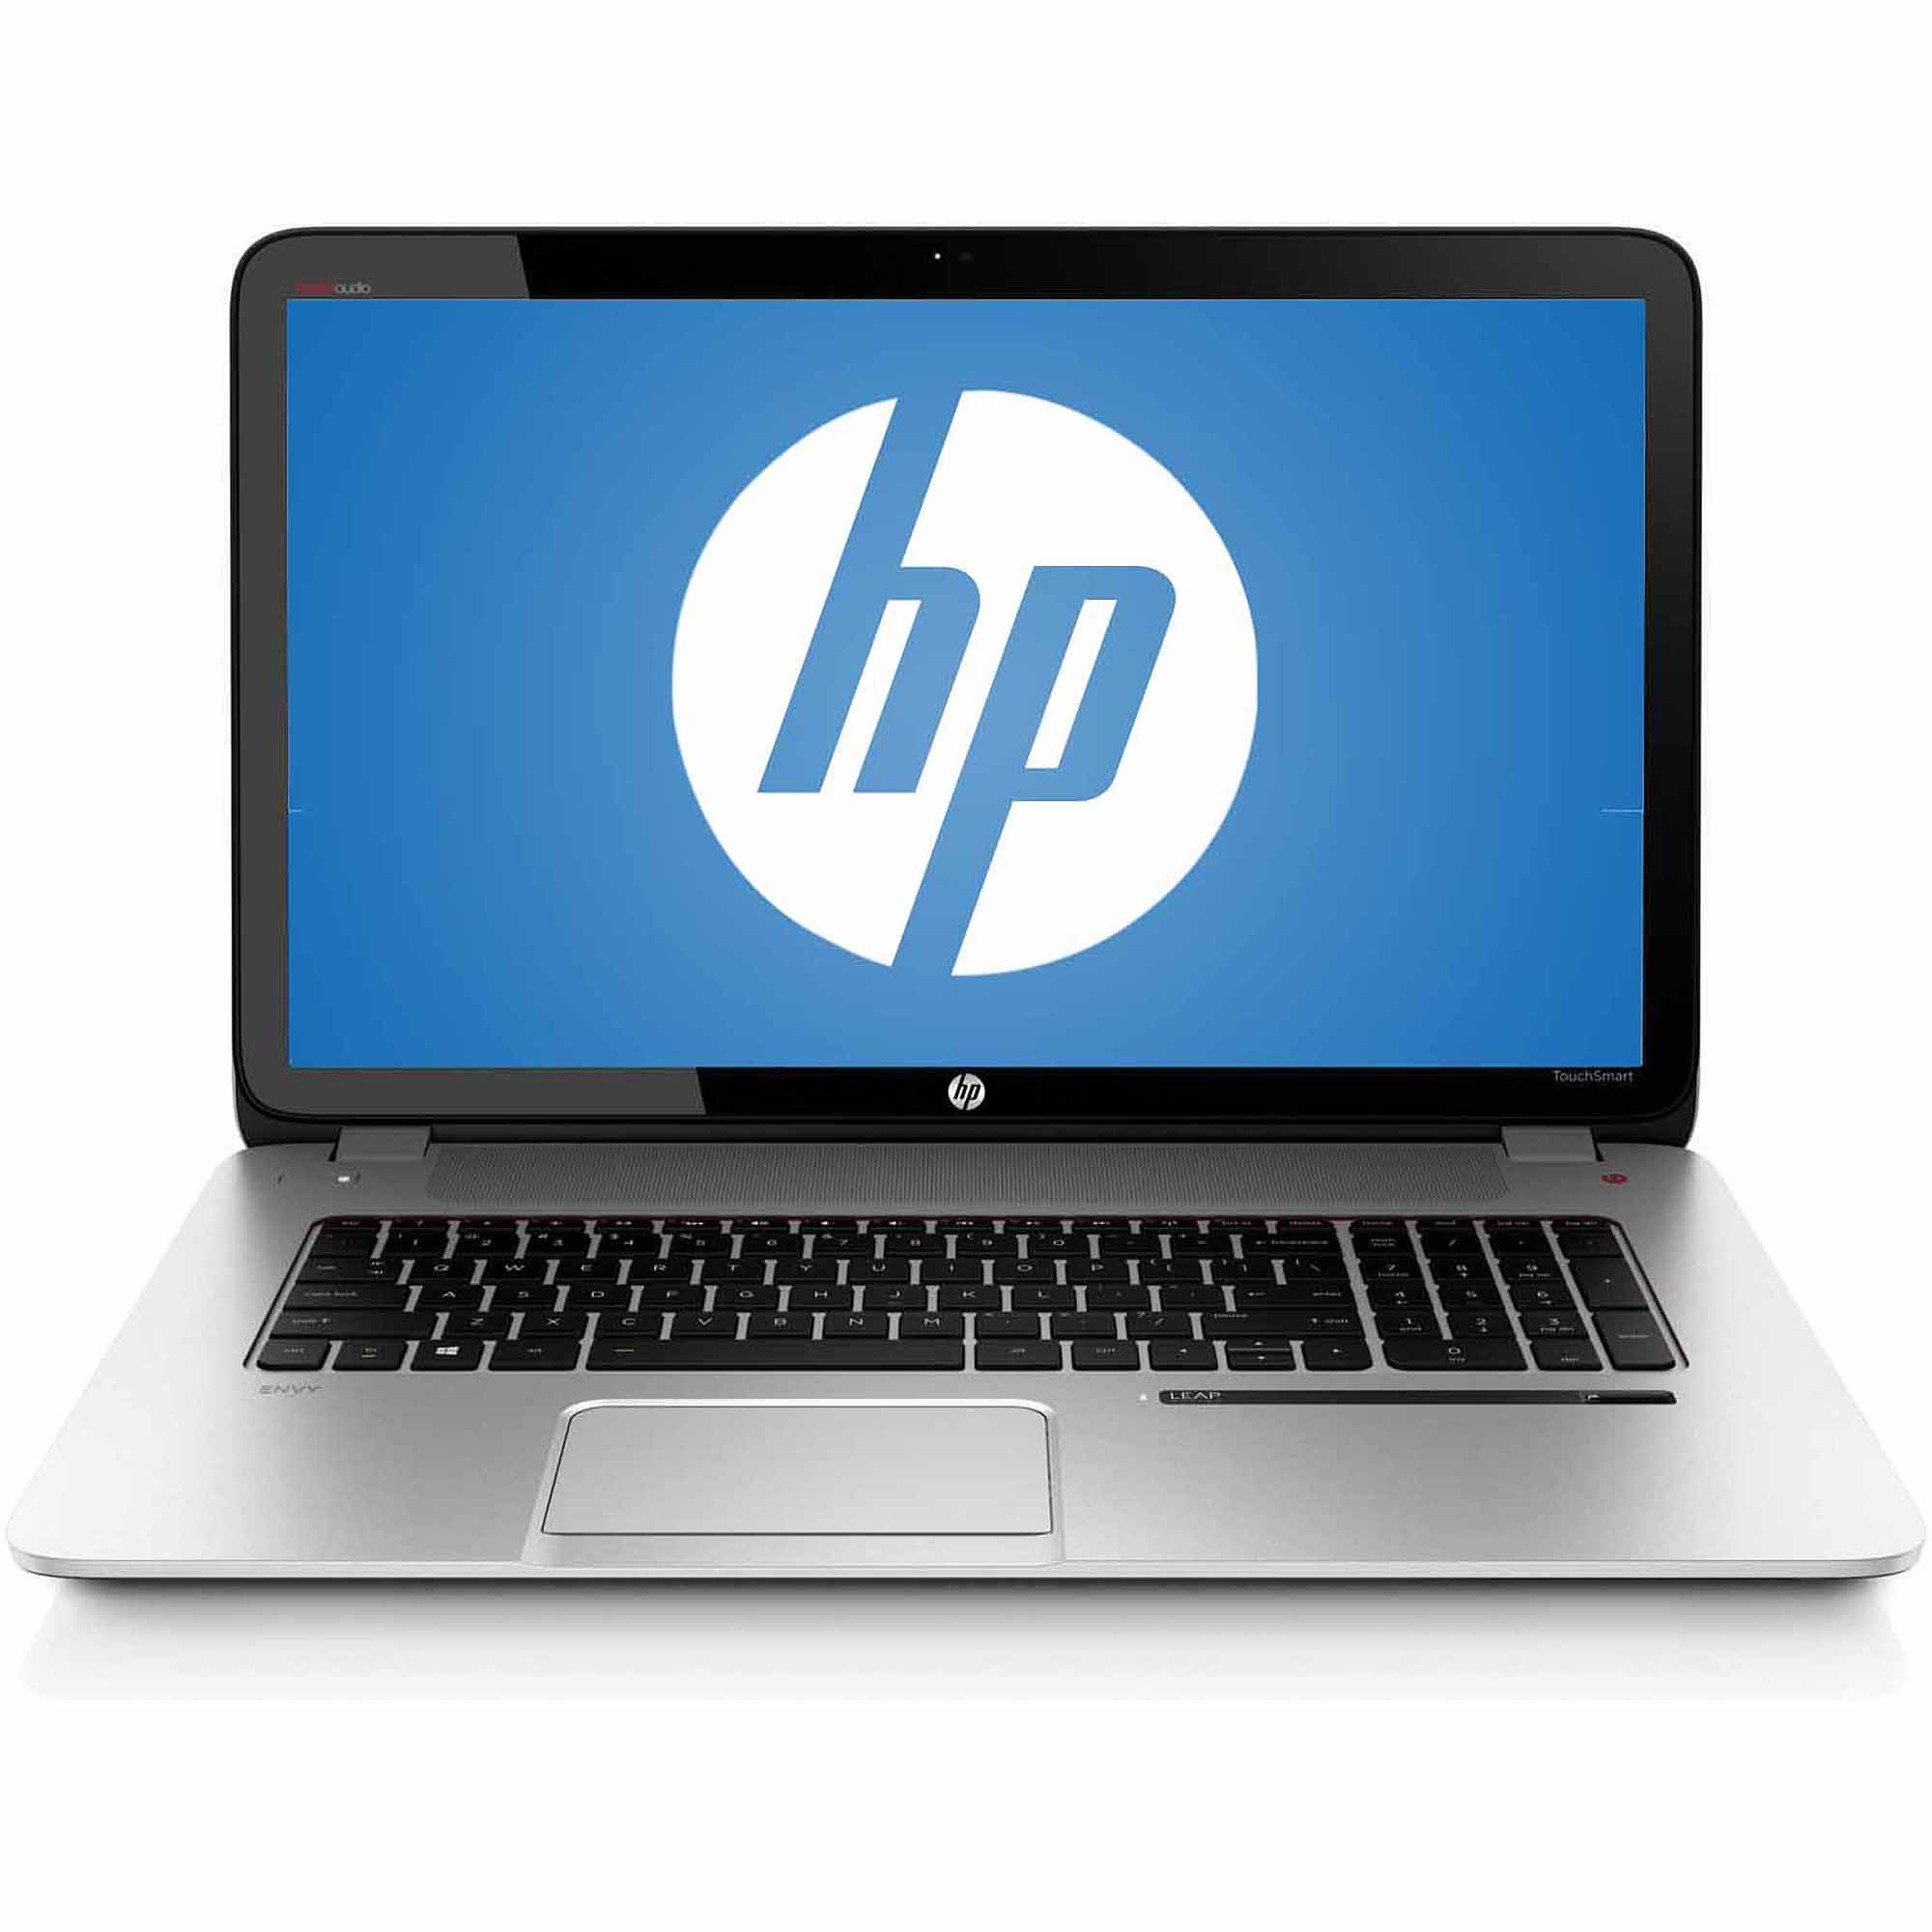 """HP Natural Silver 17.3"""" Envy 17-j160nr Leap Motion SE Laptop PC with Intel Core i5-4200M Processor, 8GB Memory, 1TB Hard Drive and Windows 8.1"""